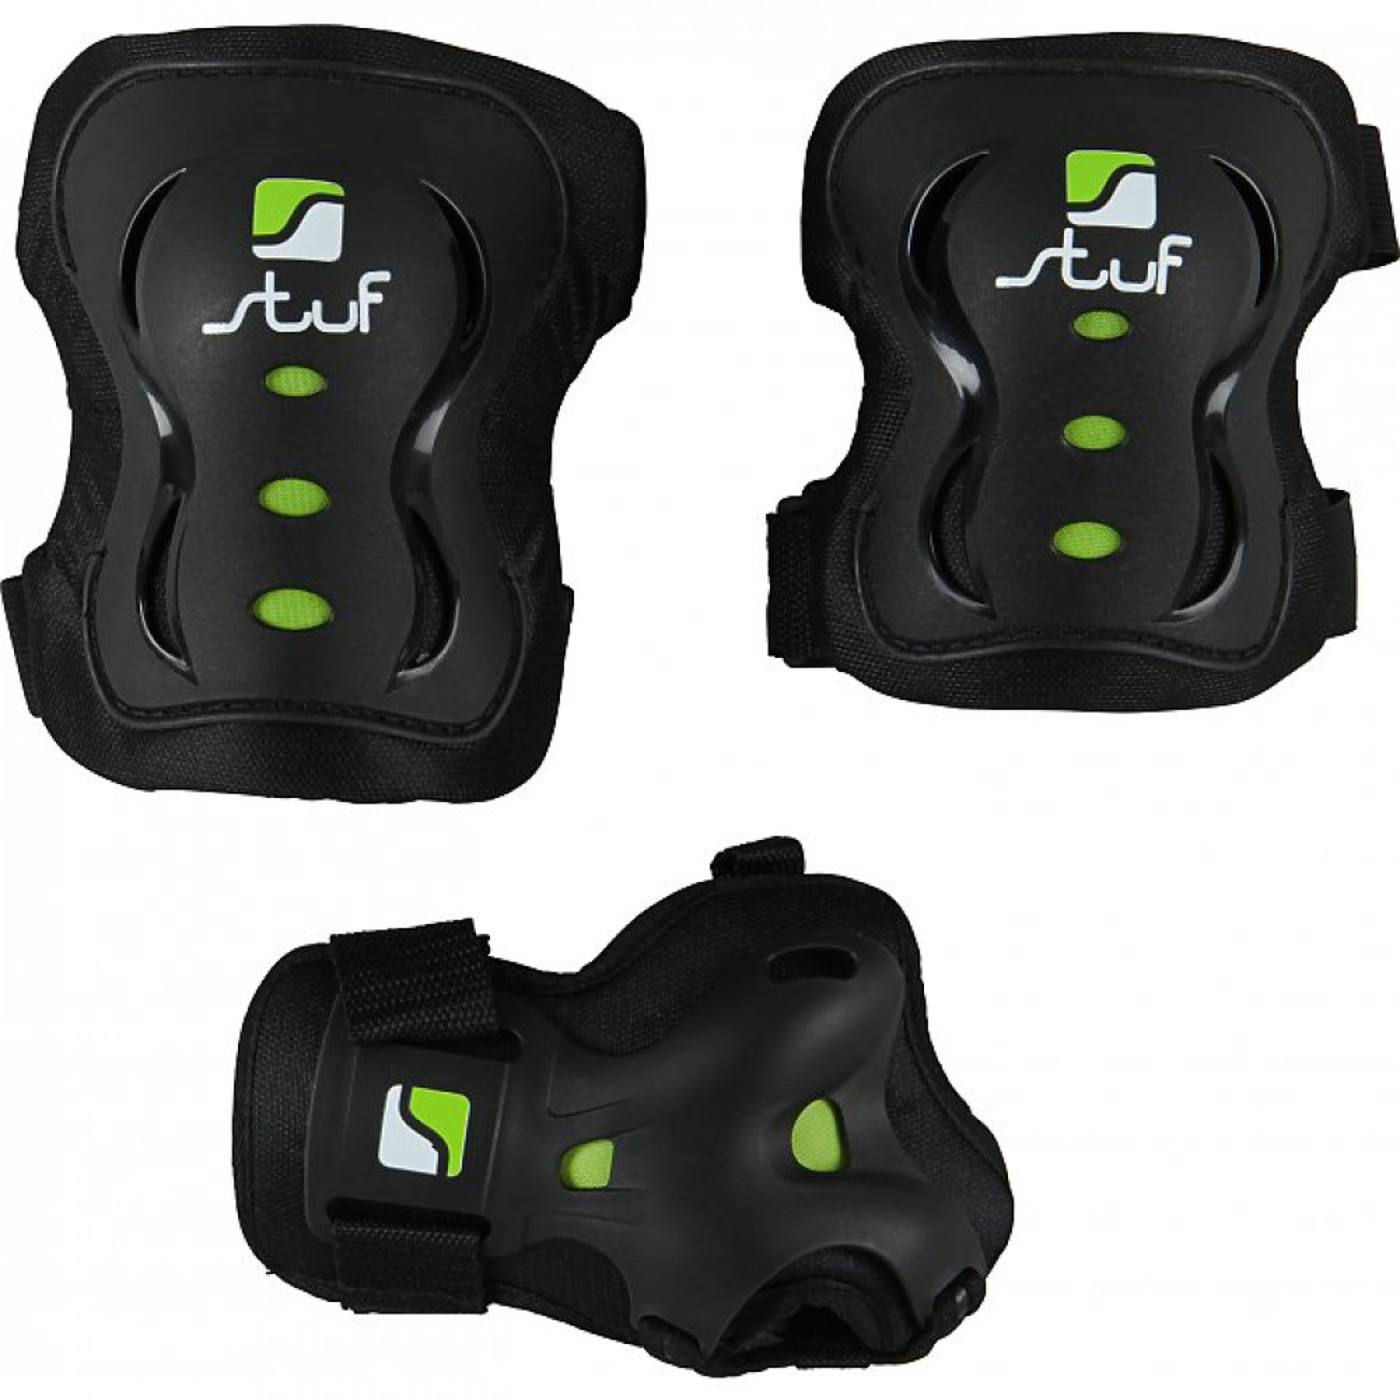 STUF PROTECTOR SET ADVANCED ADULT 2